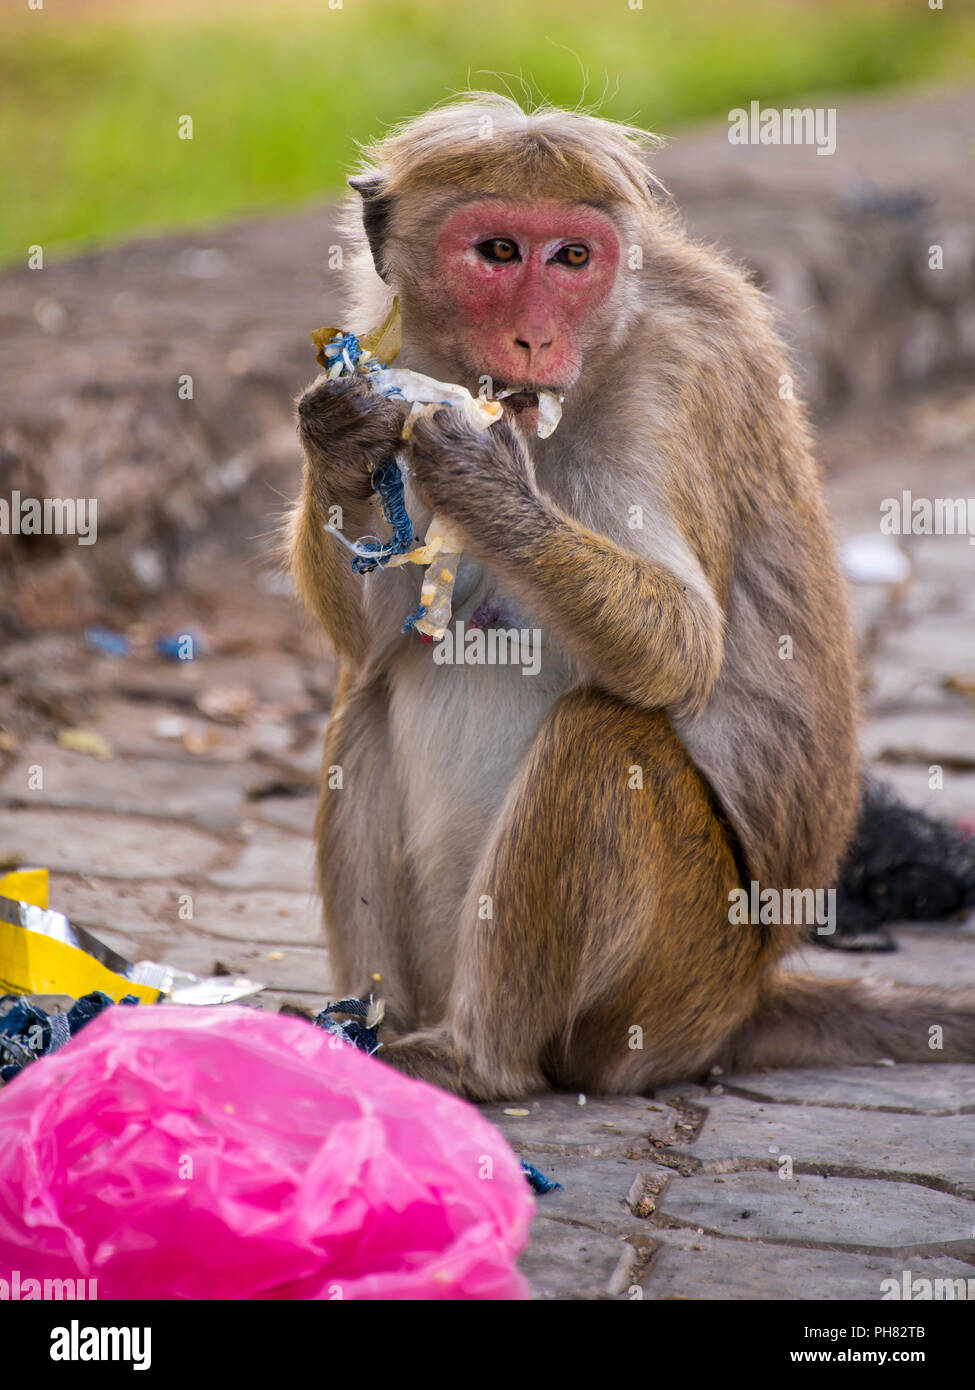 Vertical close up of a monkey scavenging for food at a rubbish bin. - Stock Image